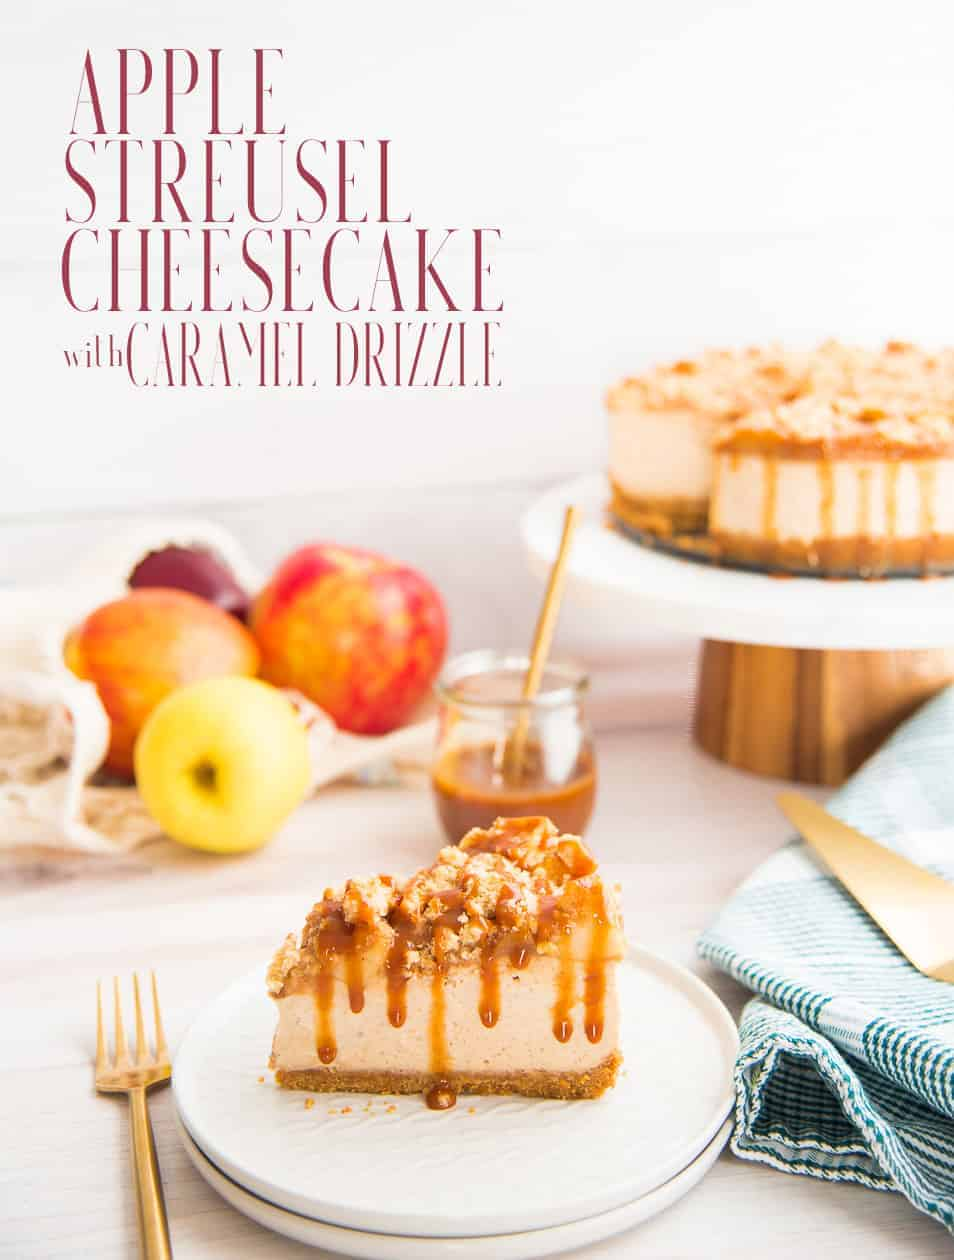 Fall is officially delicious with this creamy NYC-style cheesecake. With apples baked in and on the cheesecake, it's a bite of fall. Top with buttery streusel and a drizzle of rich caramel sauce for an amazing seasonal dessert. #applecheesecake #applestreusel #cheesecake #NYCstylecheesecake #cheesecakerecipe #dessertrecipe #postre #cheesecakedemanzana #appledesserts #applerecipes #Thanksgivingrecipe #Thanksgivingdessertrecipe #Thanksgivingdessert #holidayrecipe #holidaydessert via @ediblesense